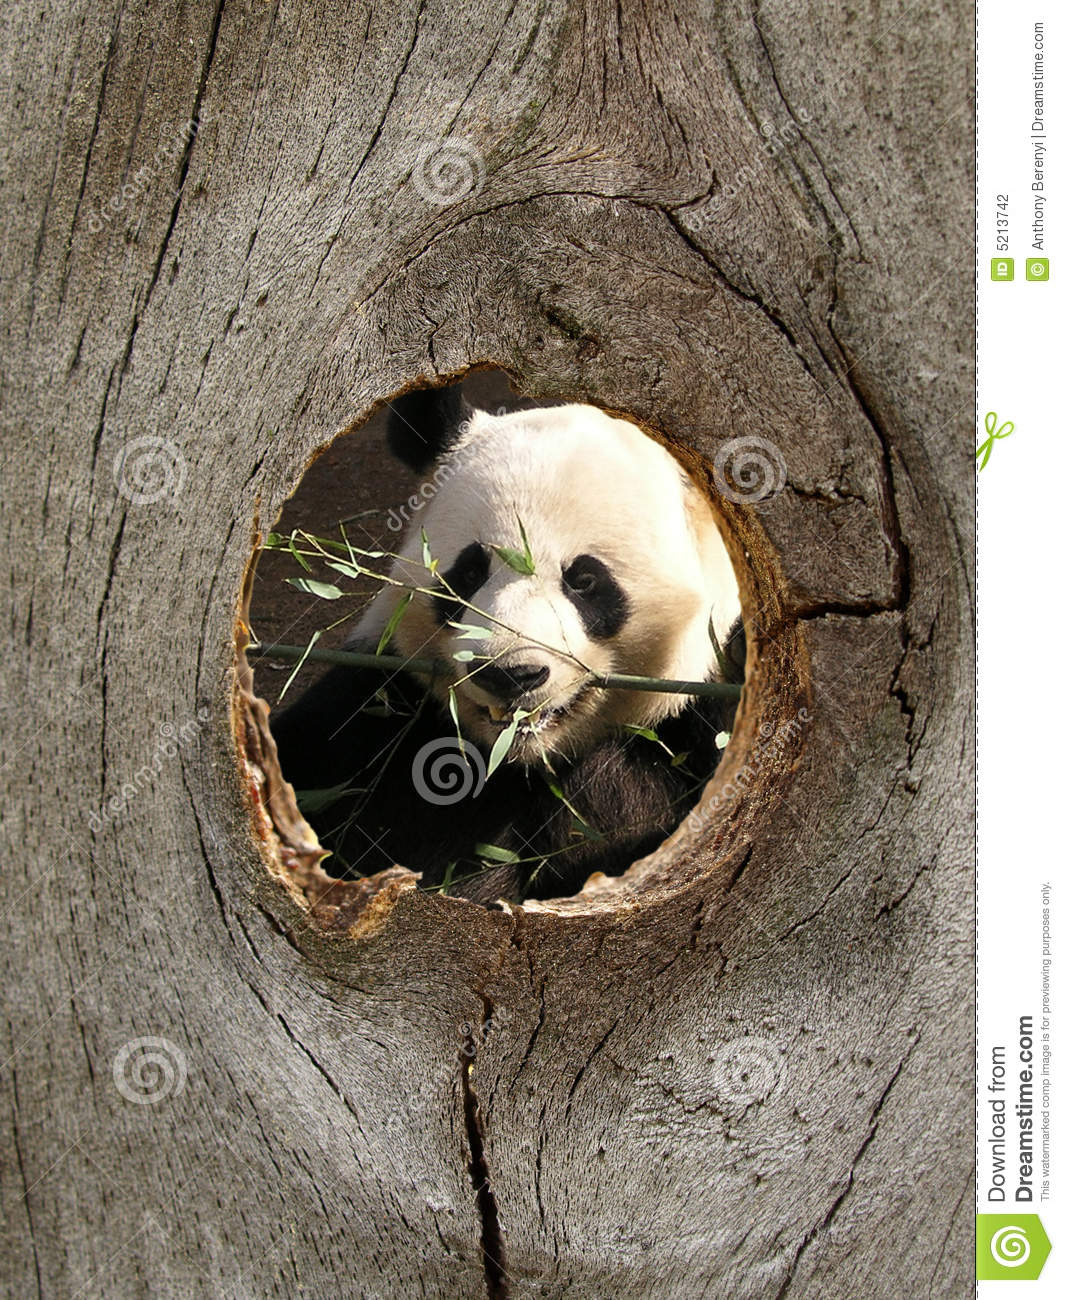 Panda Zoo Animal In Fence Knot Hole Stock Photography.